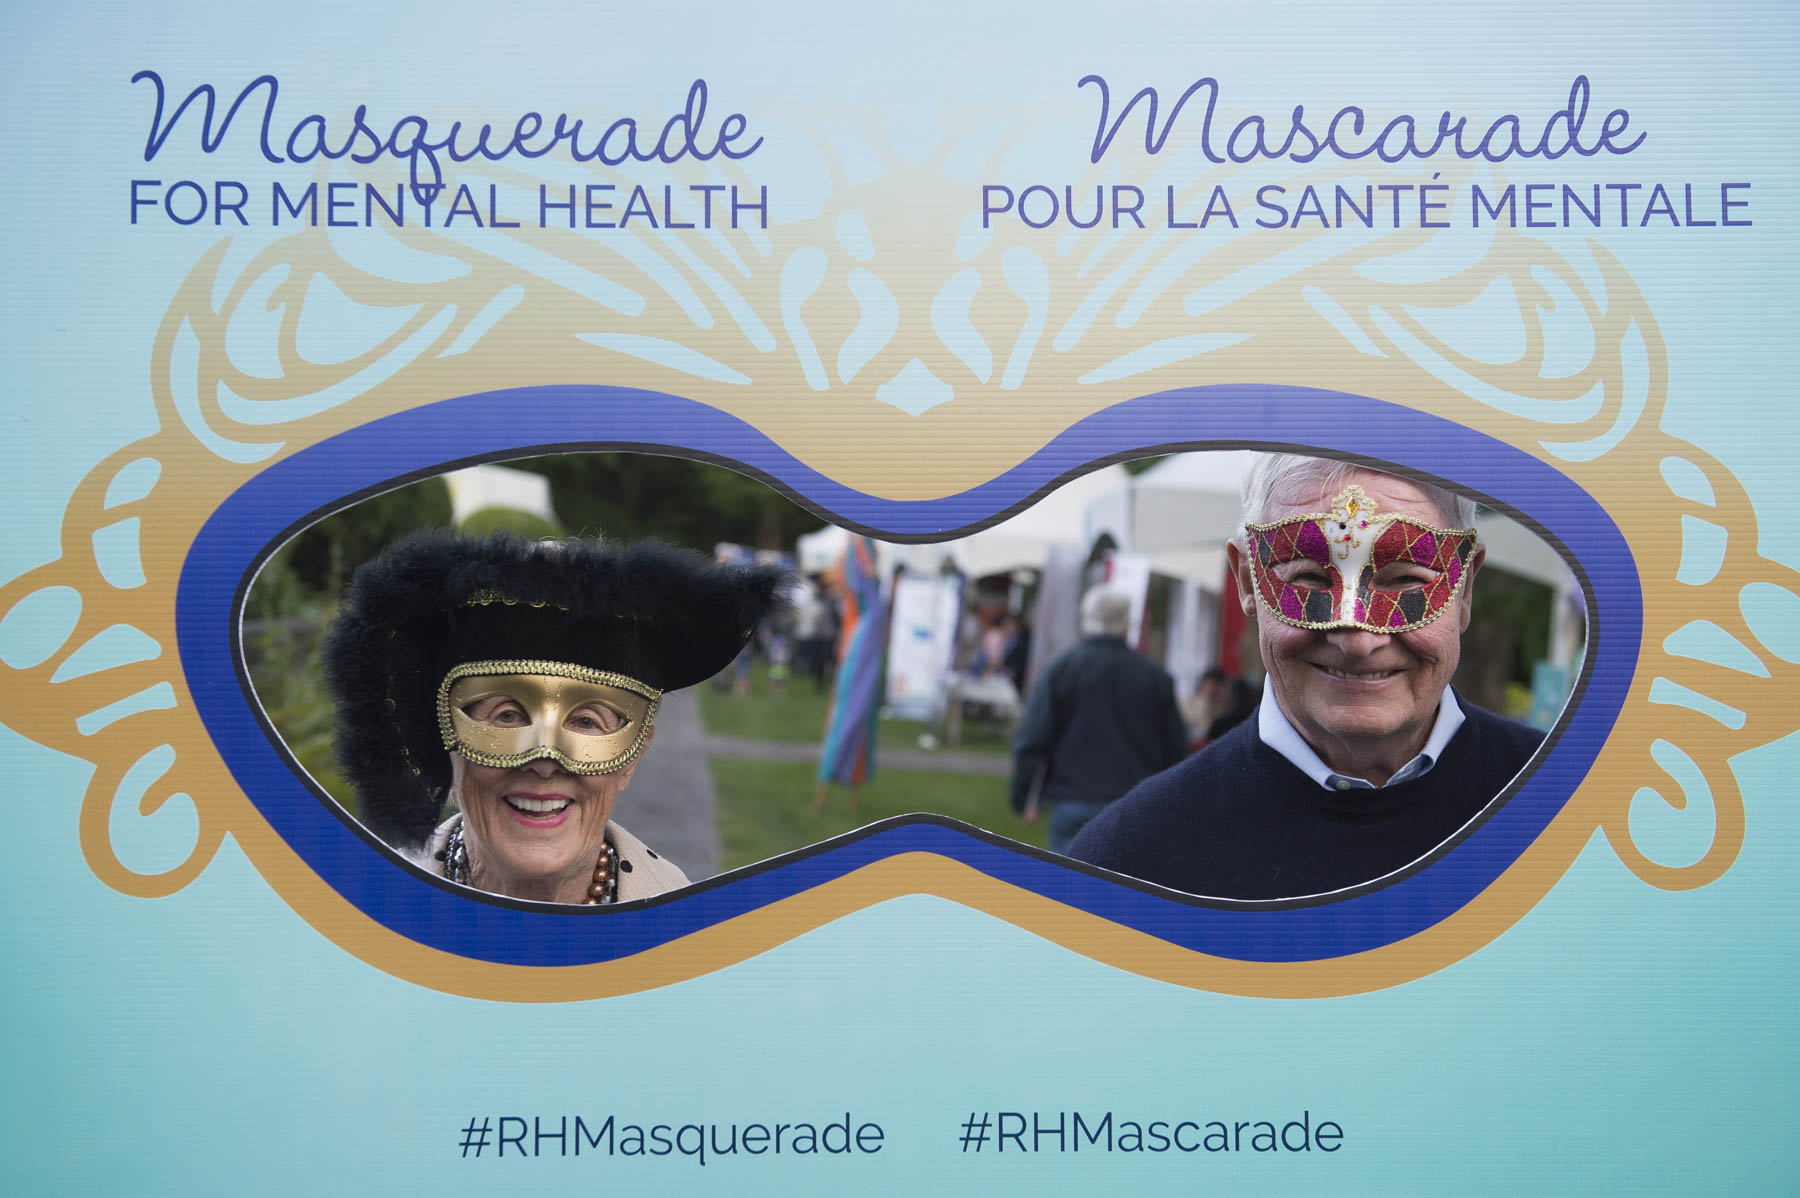 During this unique event made possible through the support of Bell Let's Talk, the Mental Health Commission of Canada, Borden Ladner Gervais LLP and the Honourable Margaret McCain, the grounds of Rideau Hall were transformed into a lively fair. All activities were free of charge. Members of the public had the opportunity to take selfies with a frame made to fit the theme of the event.